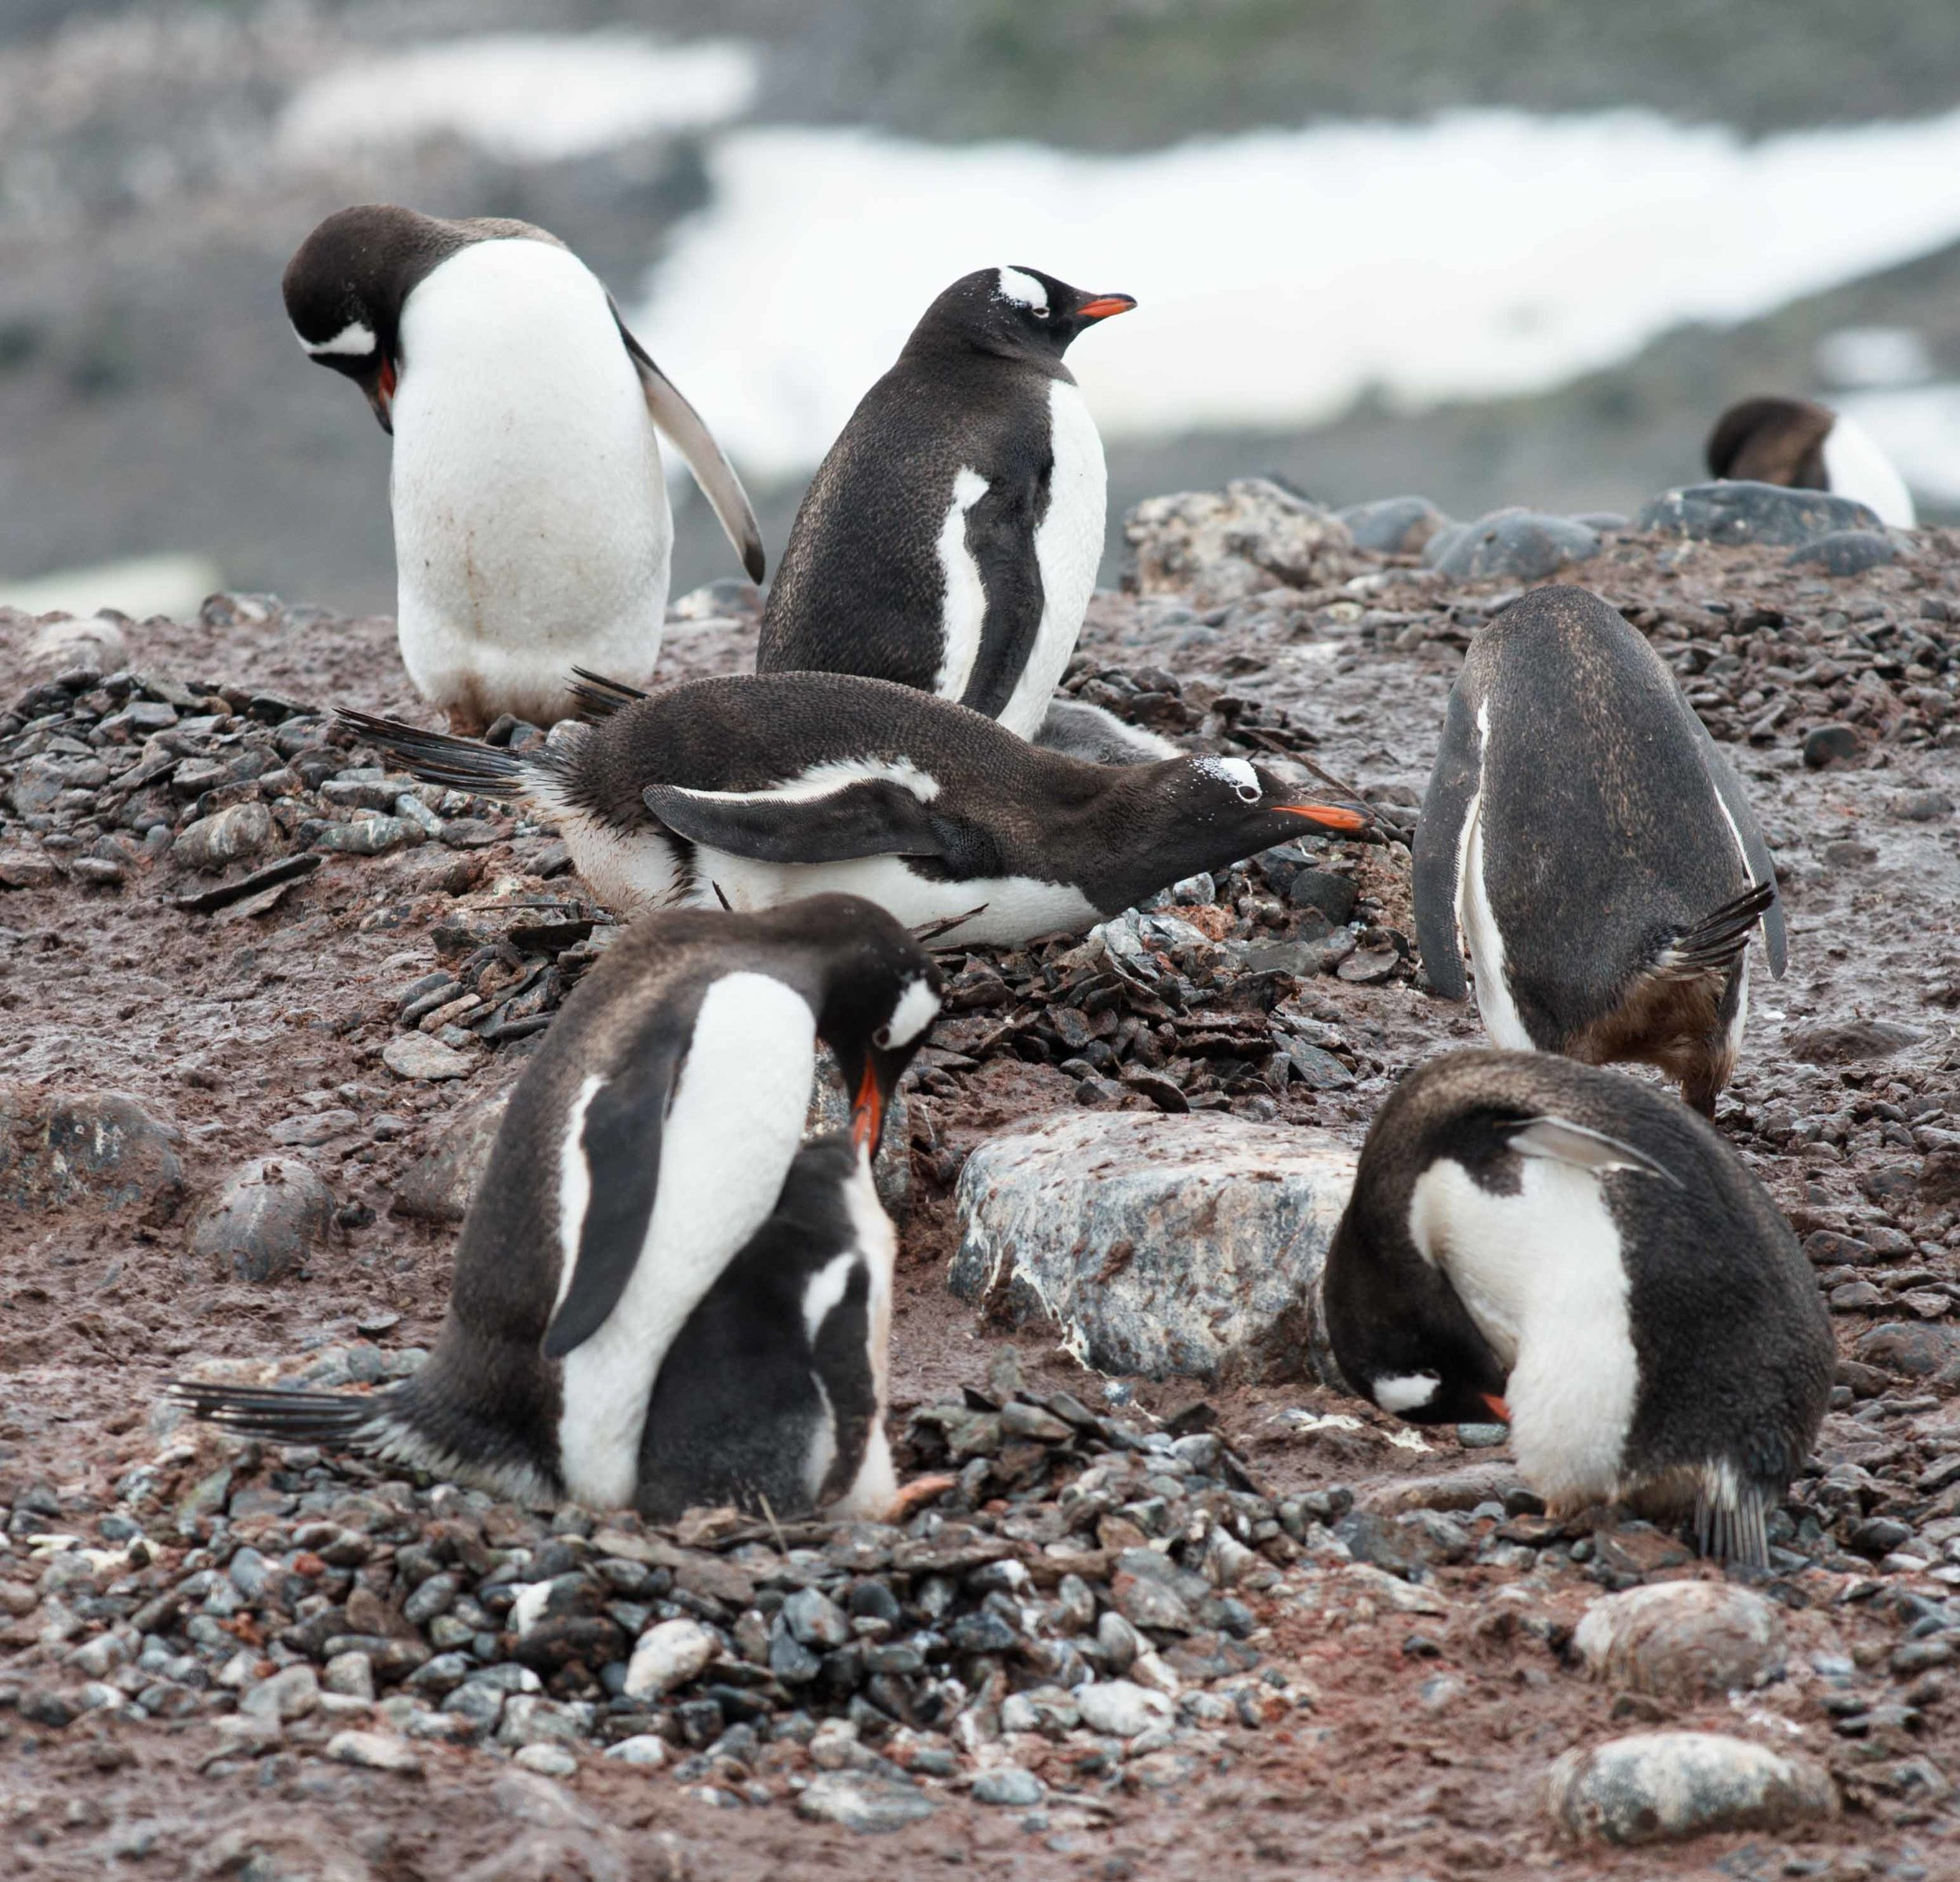 Gentoo penguins with chicks.